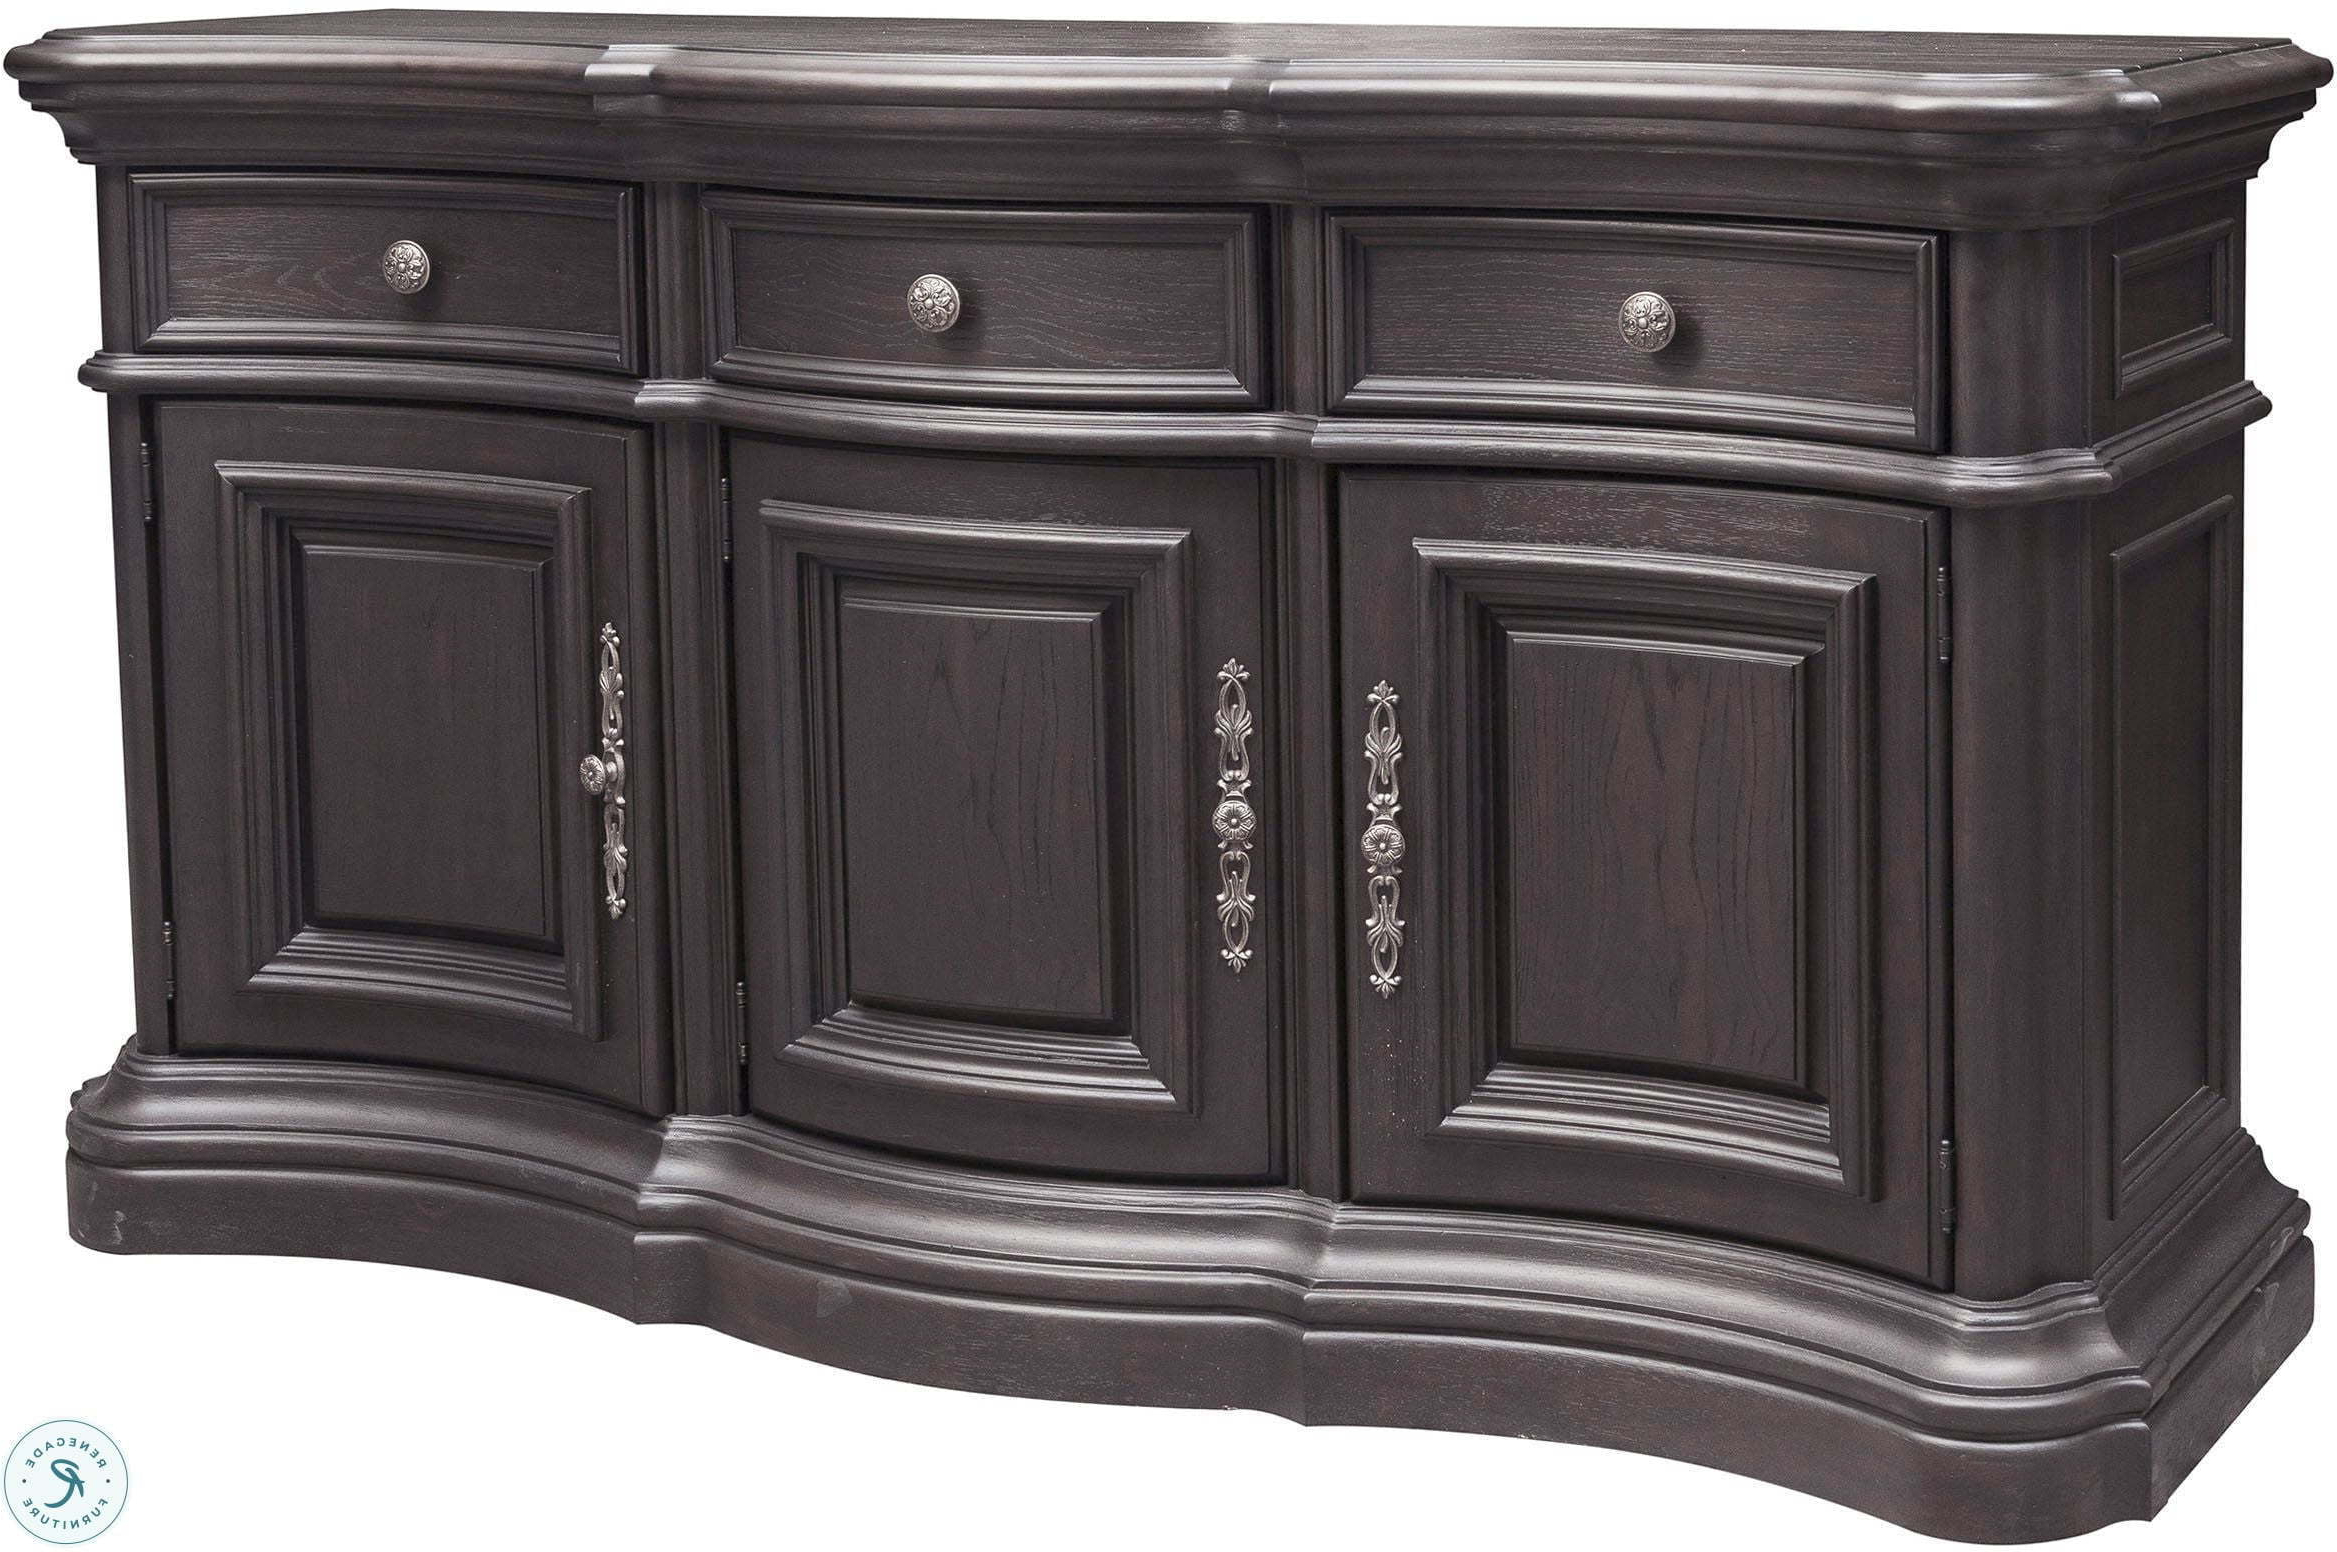 Palisade Distressed Dark Brown Extendable Double Pedestal Dining Room Set Intended For Palisade Sideboards (View 6 of 20)